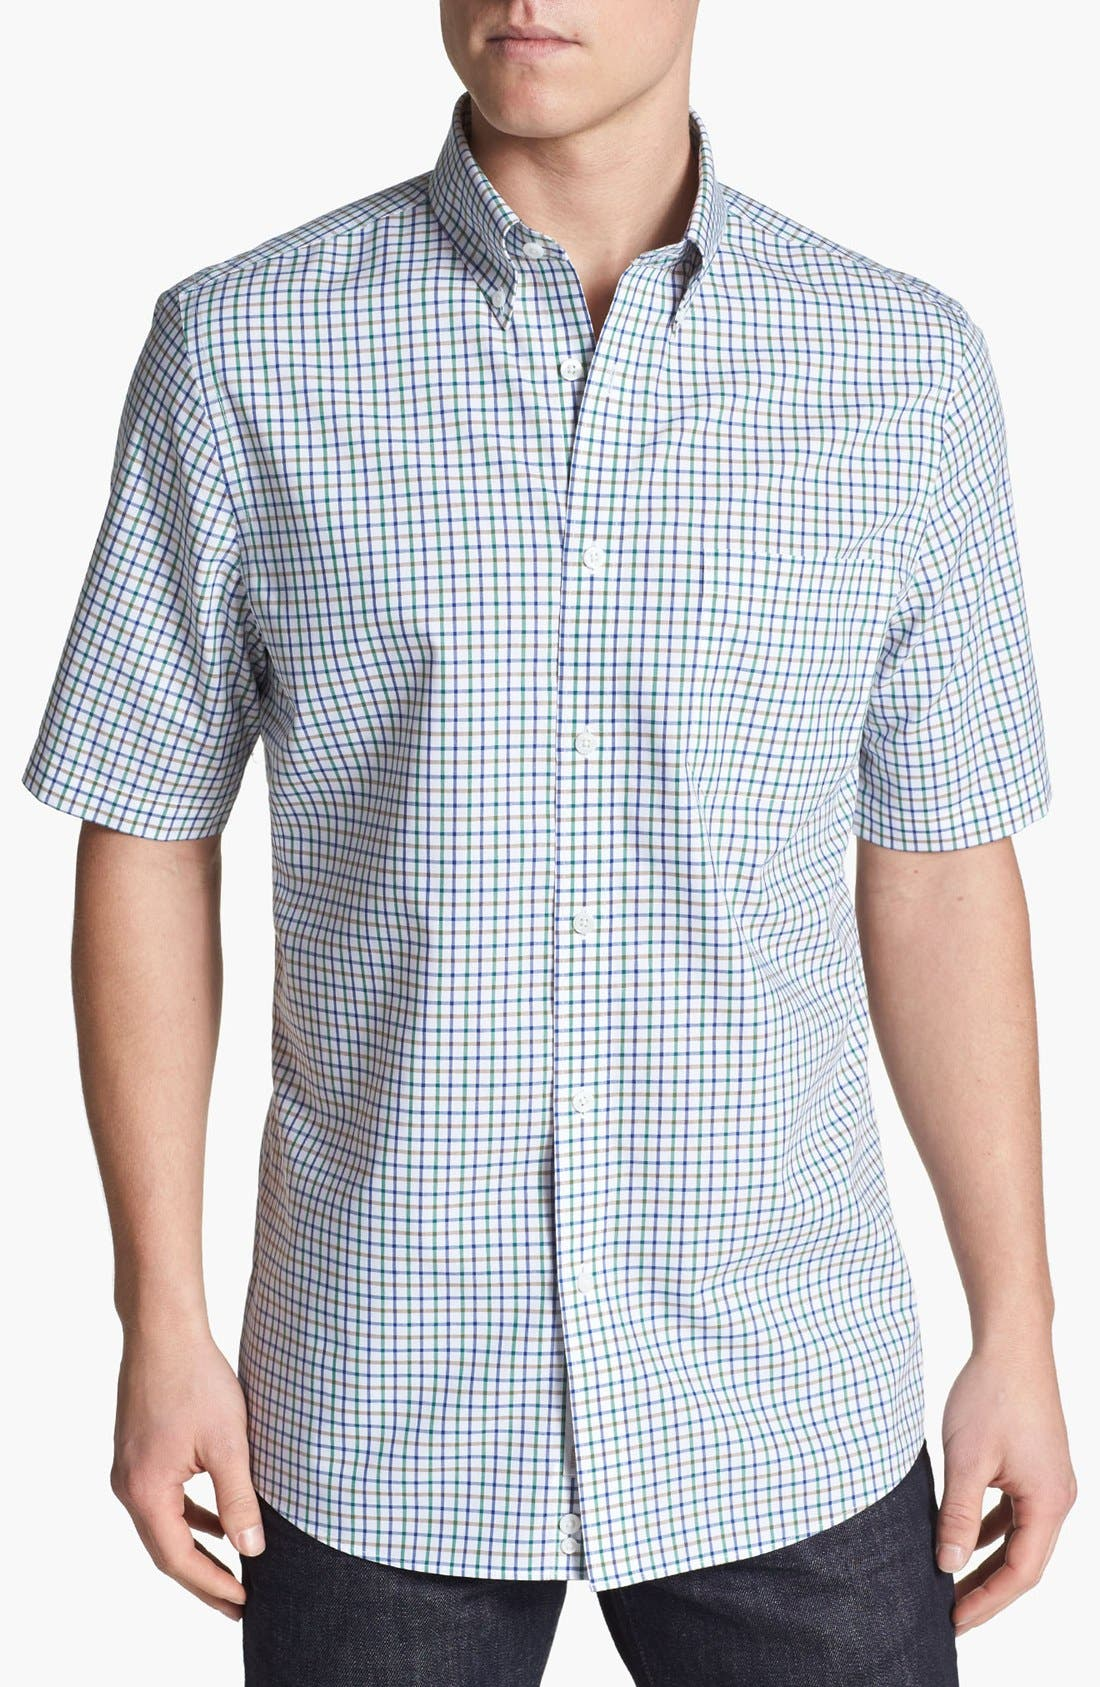 Alternate Image 1 Selected - Nordstrom Smartcare™ Short Sleeve Poplin Sport Shirt